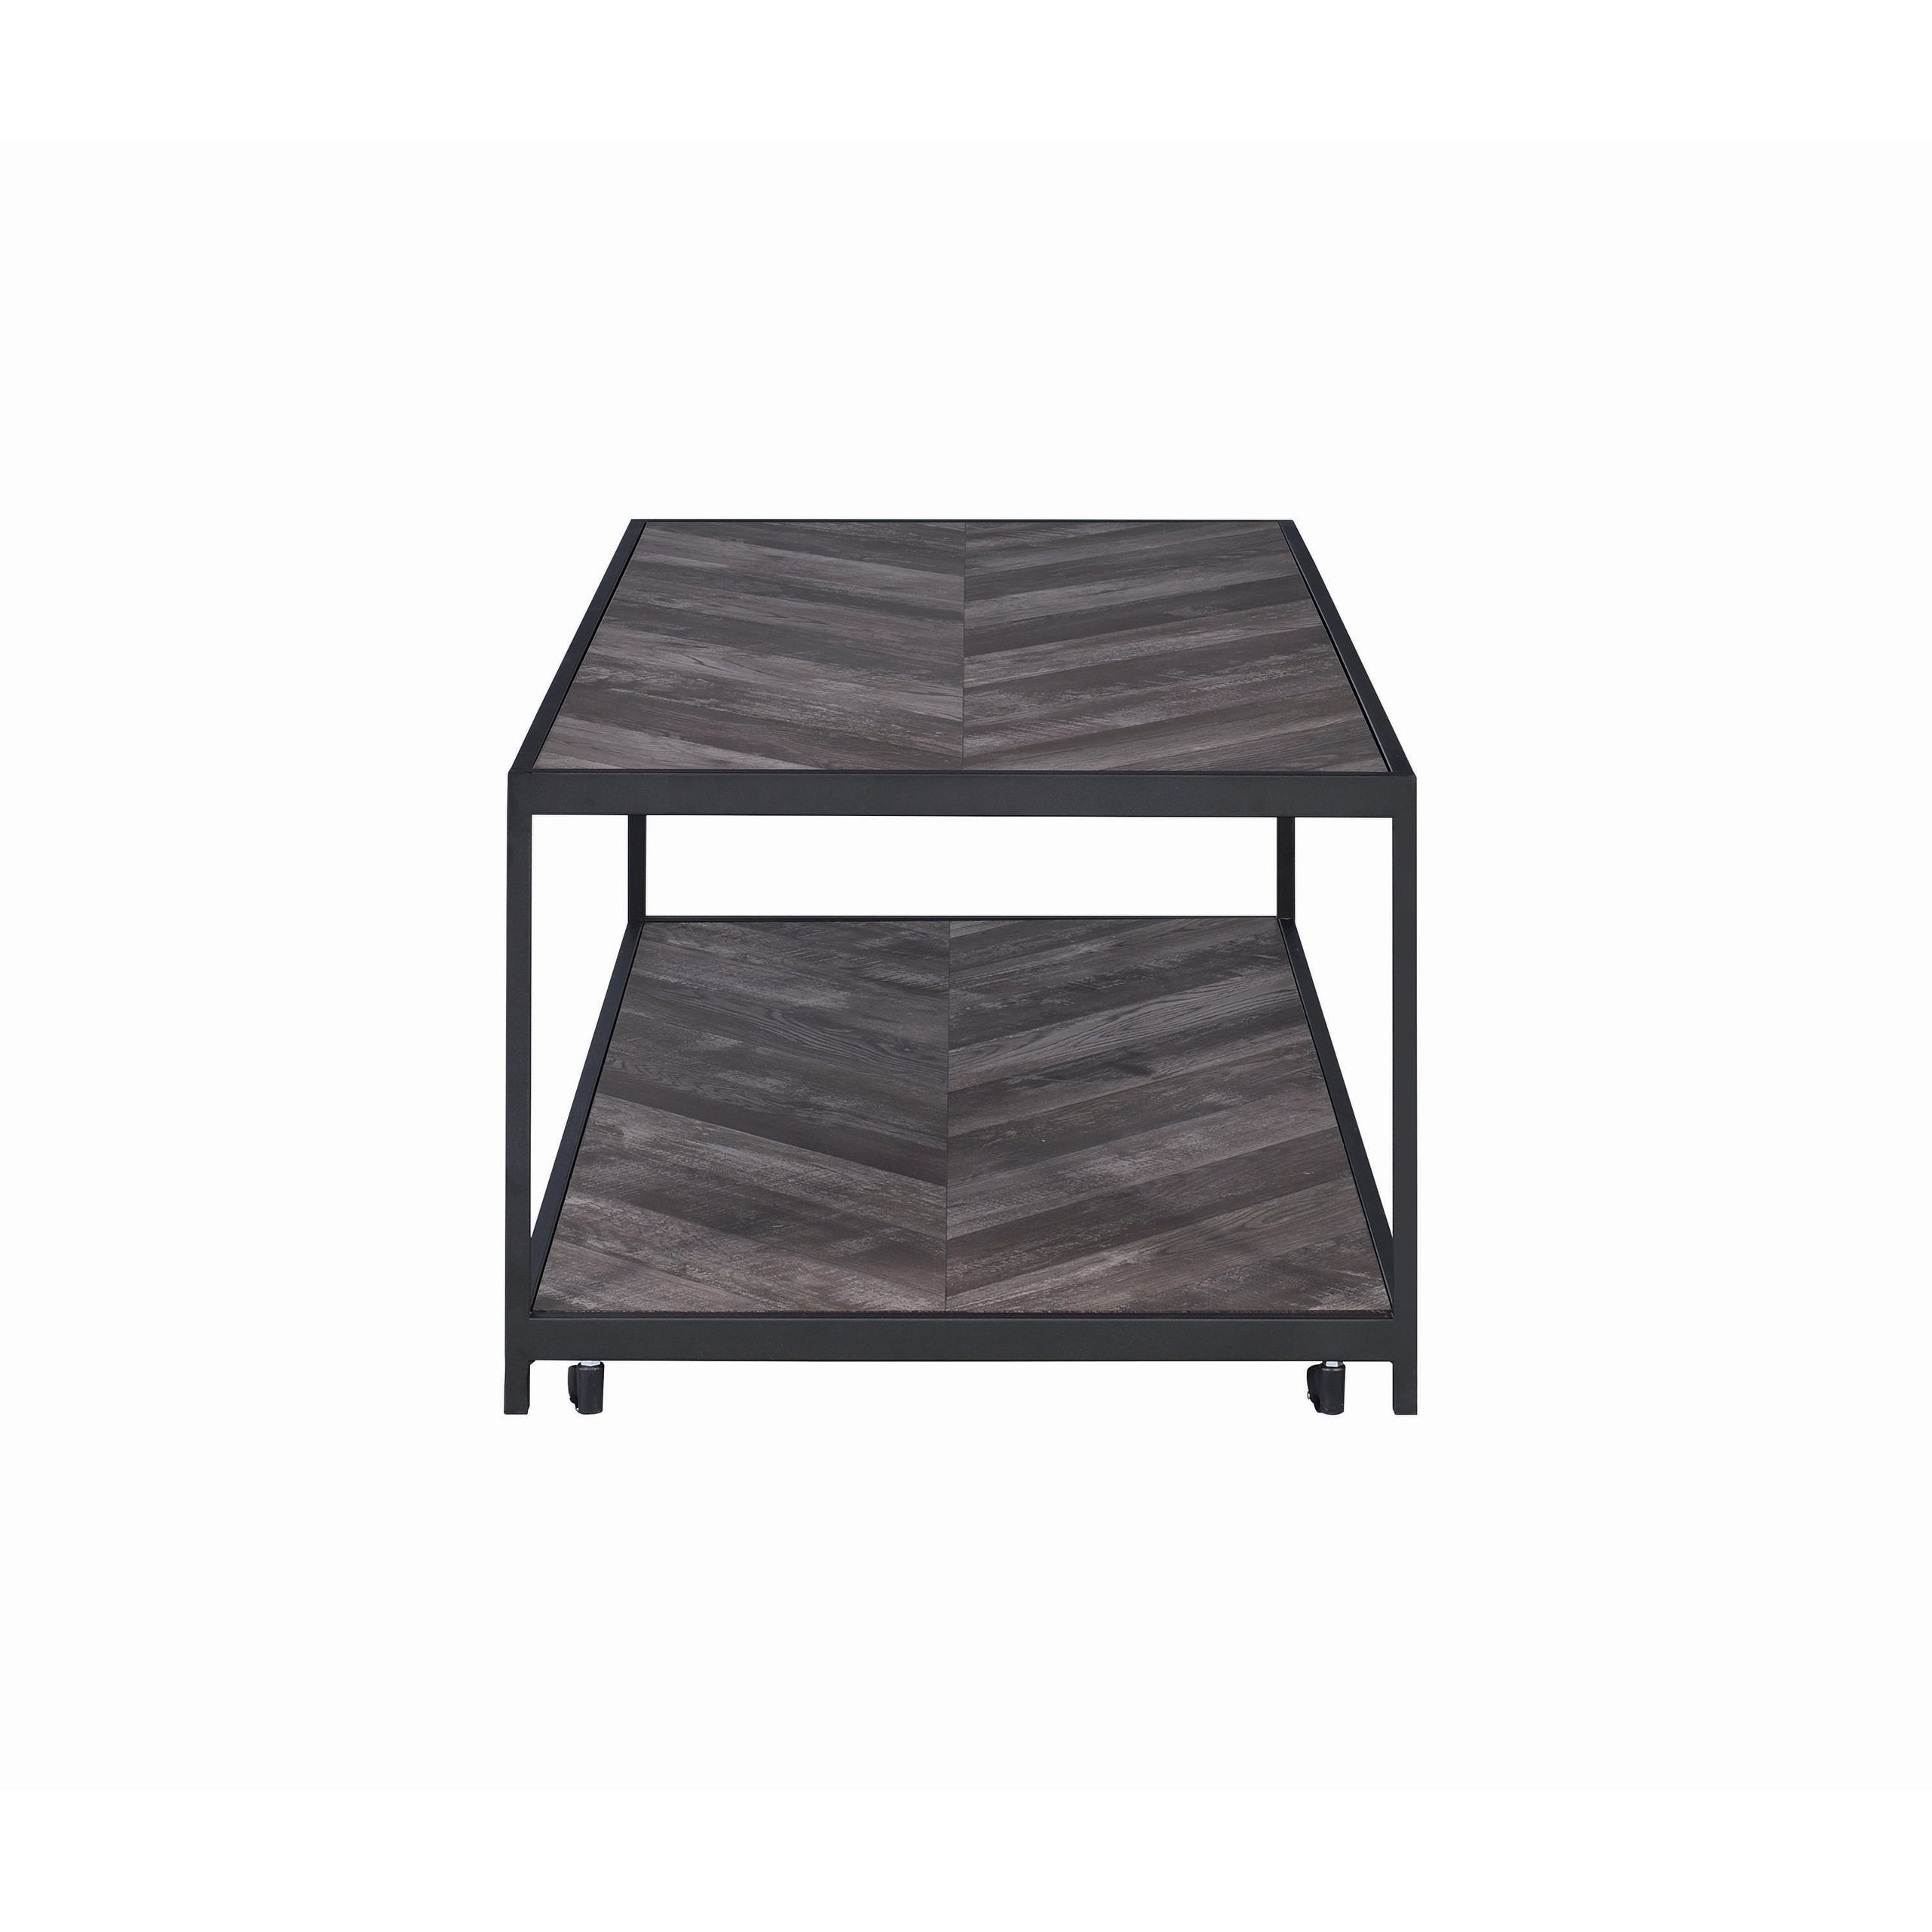 Brilliant Metal Coffee Table With Wooden Top And Bottom Shelf Black And Brown Andrewgaddart Wooden Chair Designs For Living Room Andrewgaddartcom